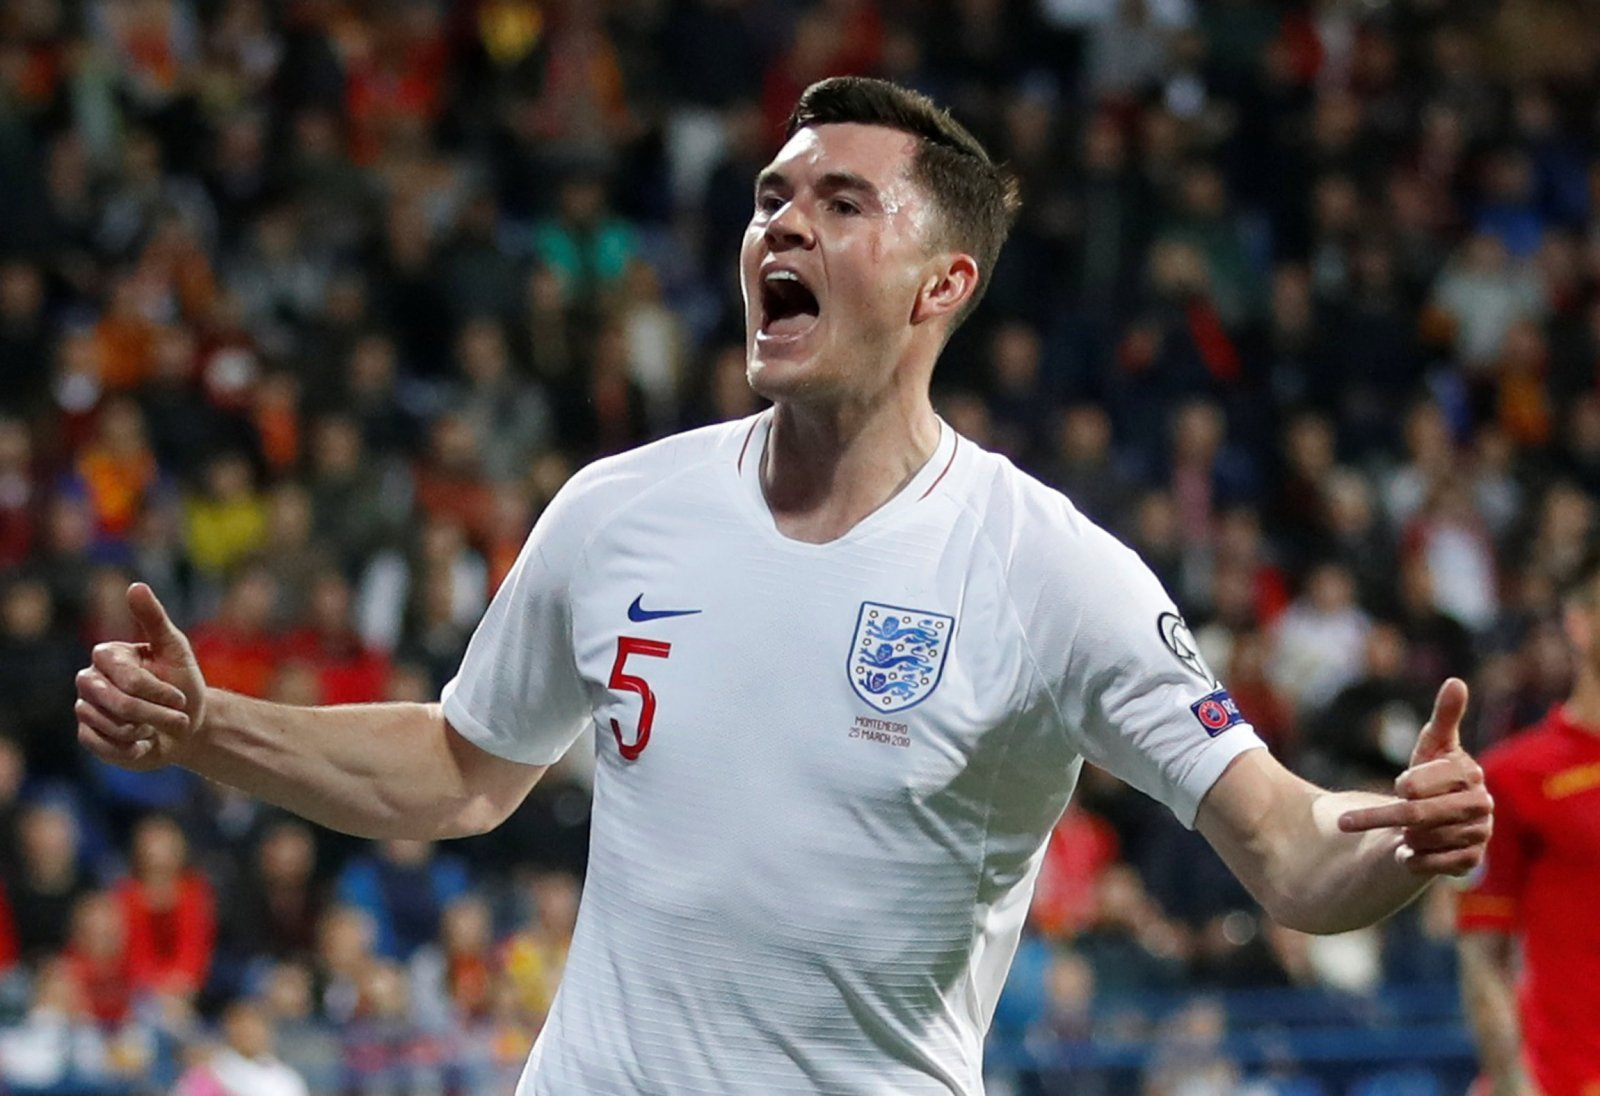 Arsenal: Michael Keane would be a major upgrade on Mustafi